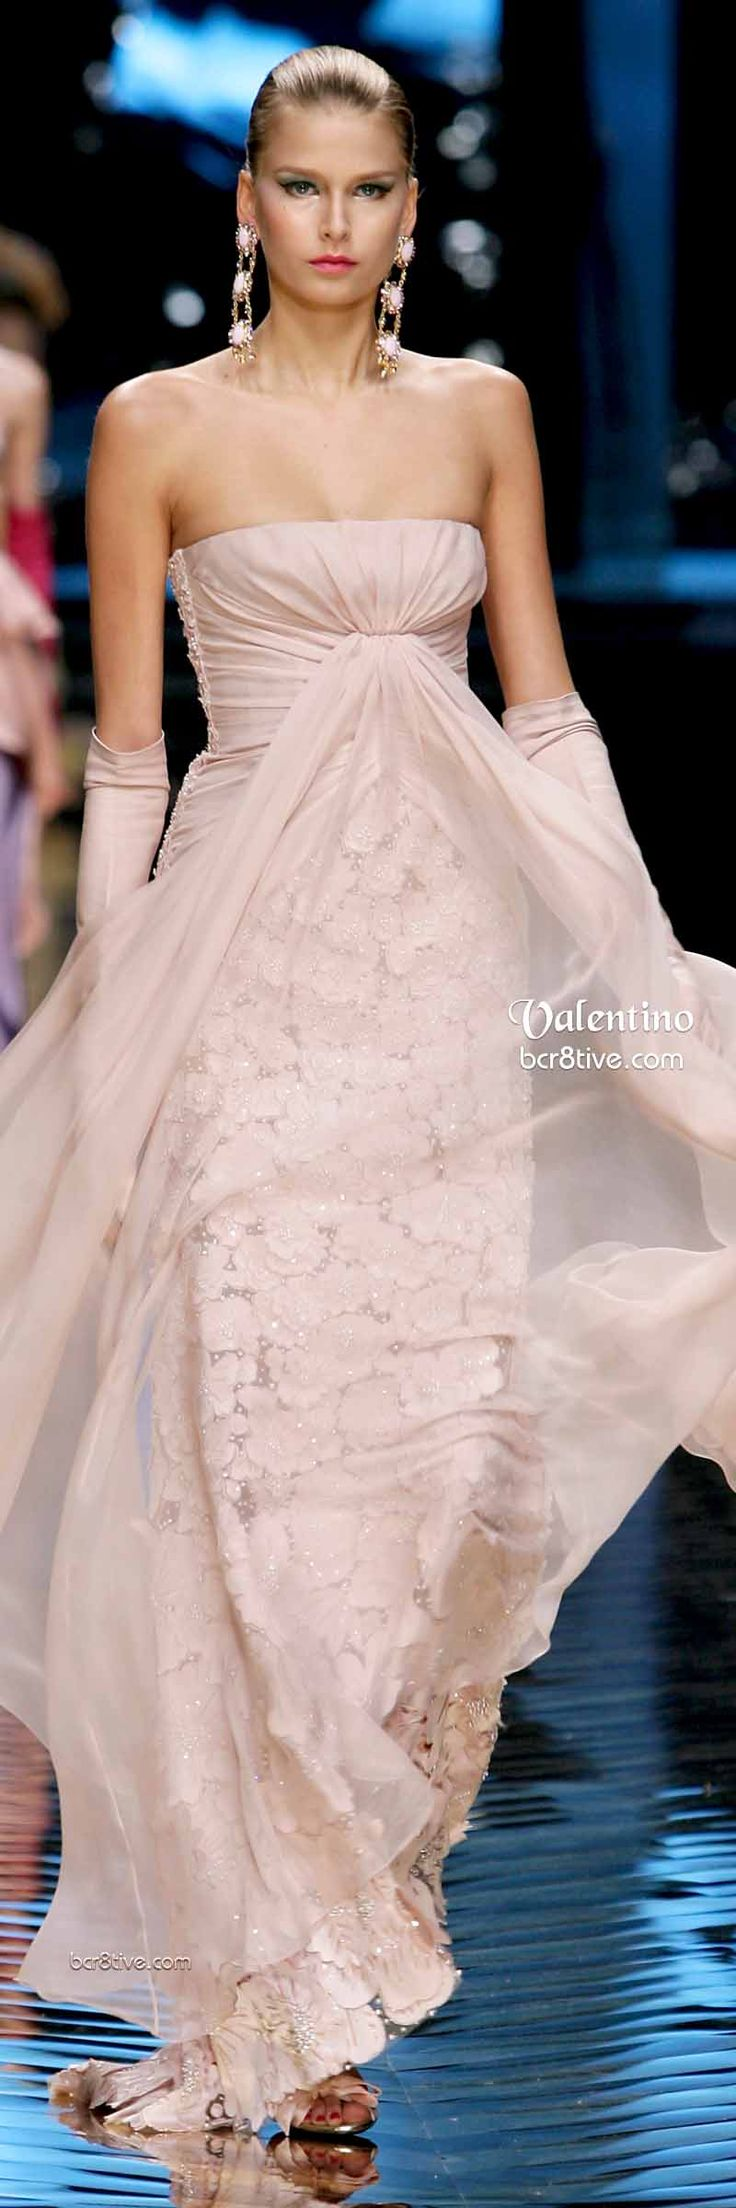 Farewell Valentino Collection - LOVE this blush colored gown!